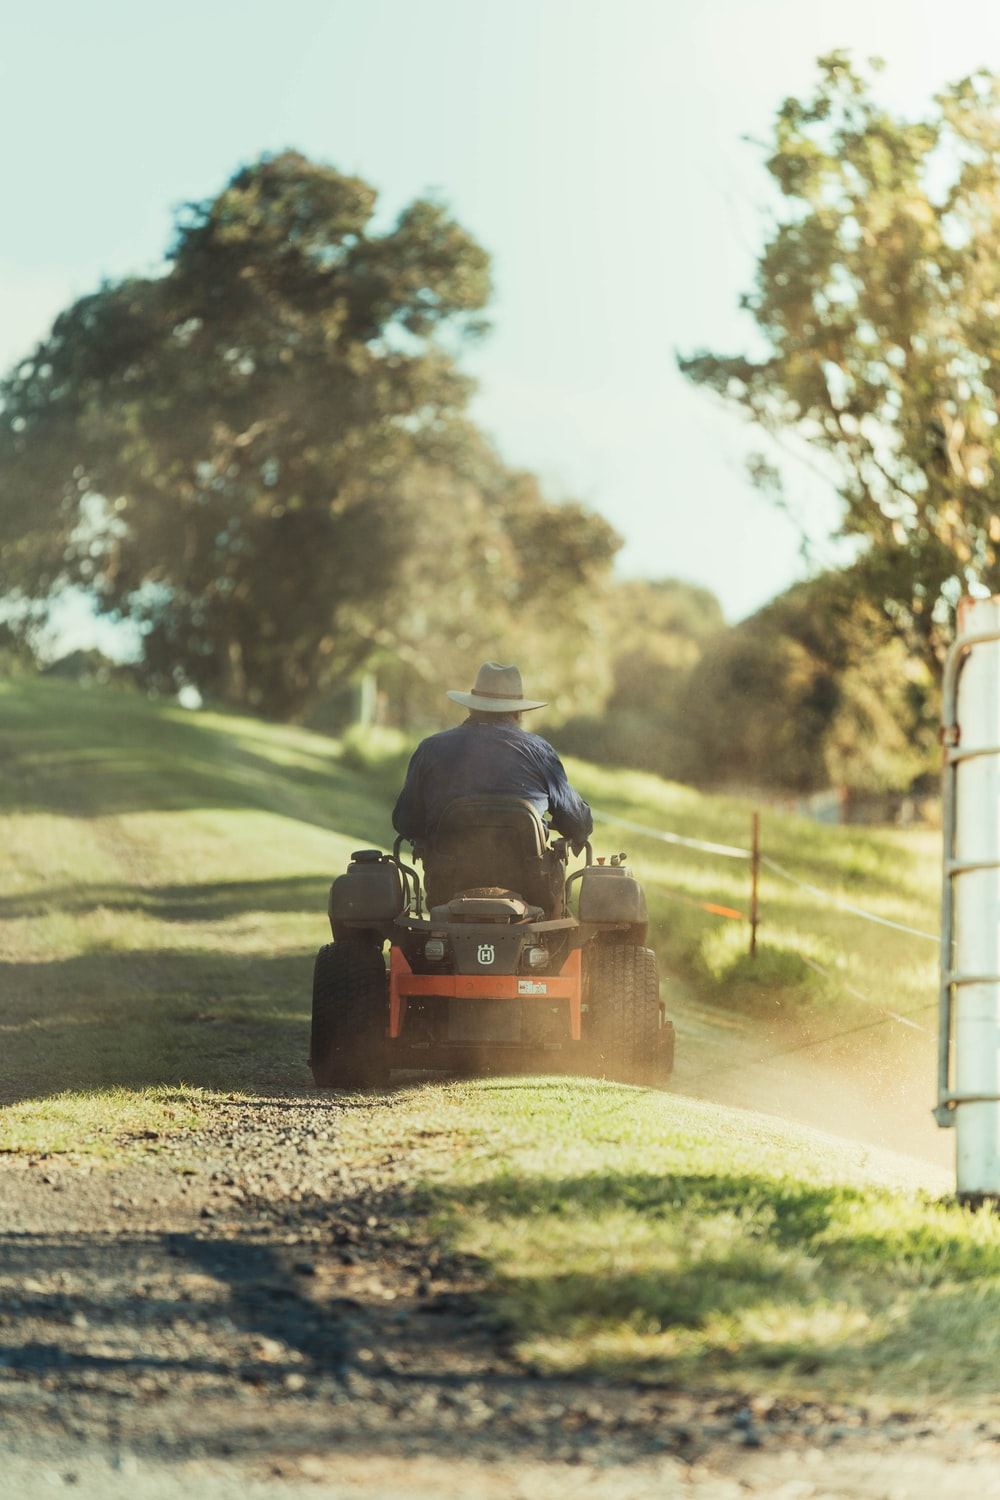 man riding red and black ride on lawn mower on green grass field during daytime